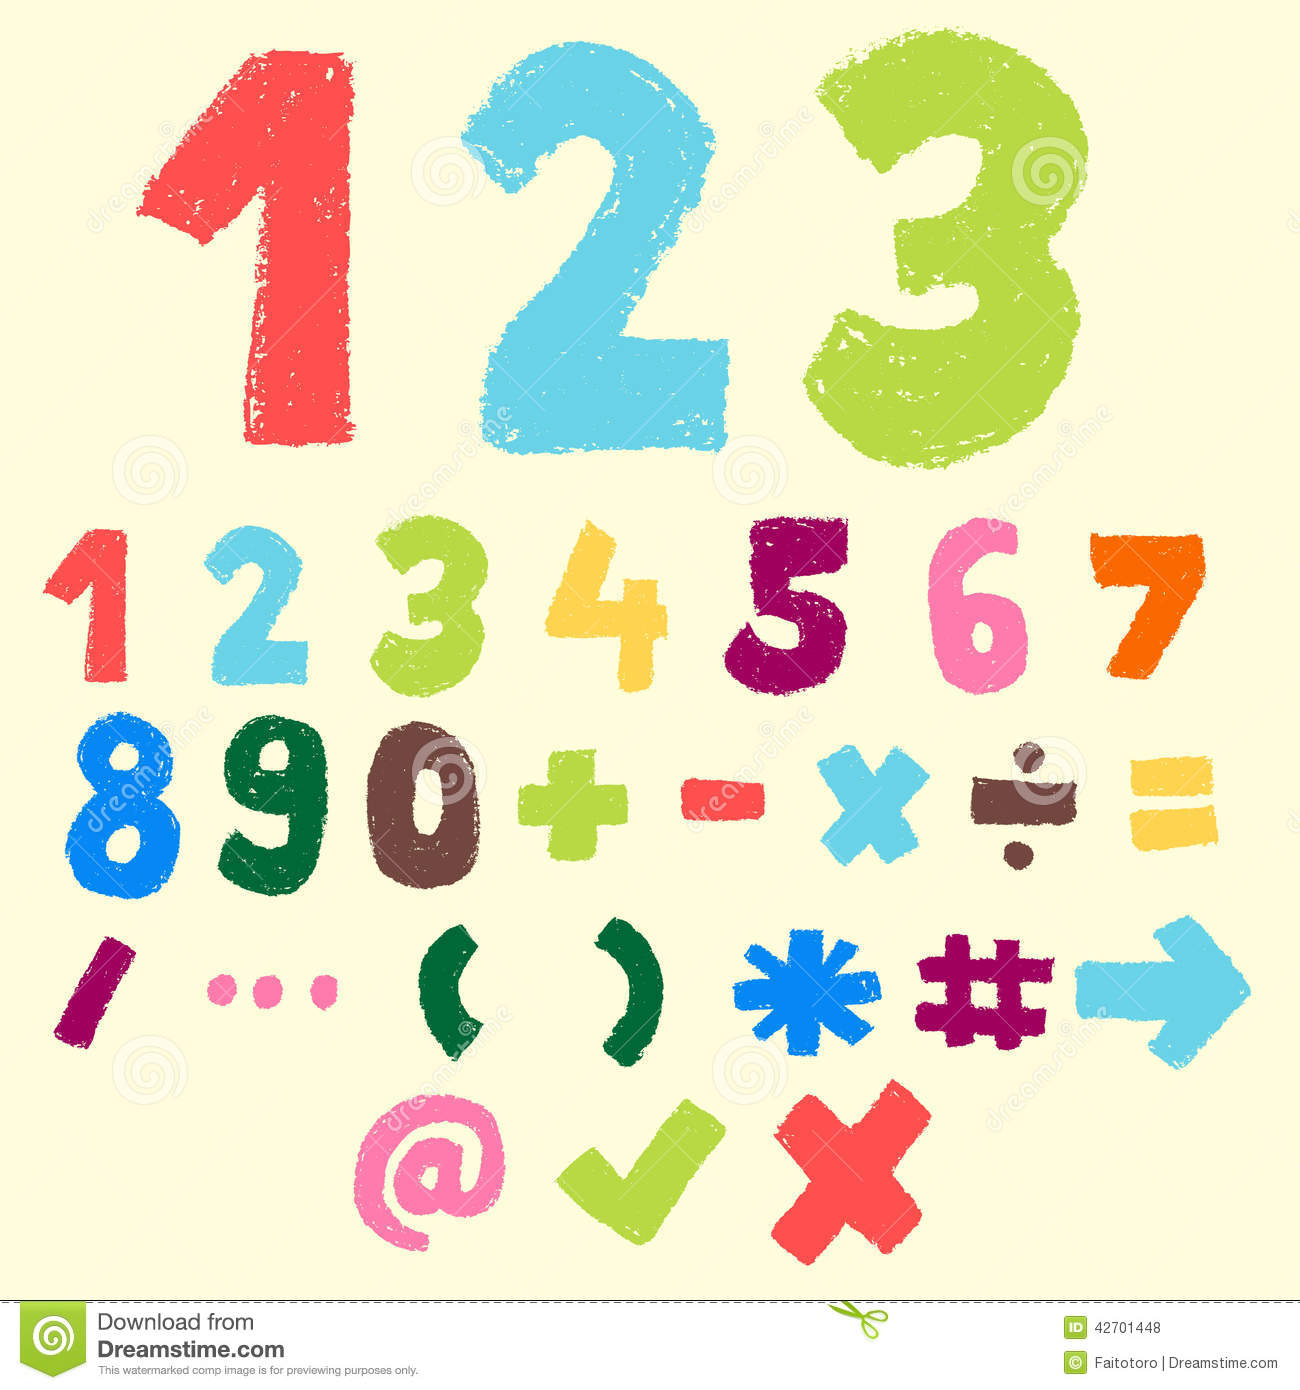 What is a numeric vector